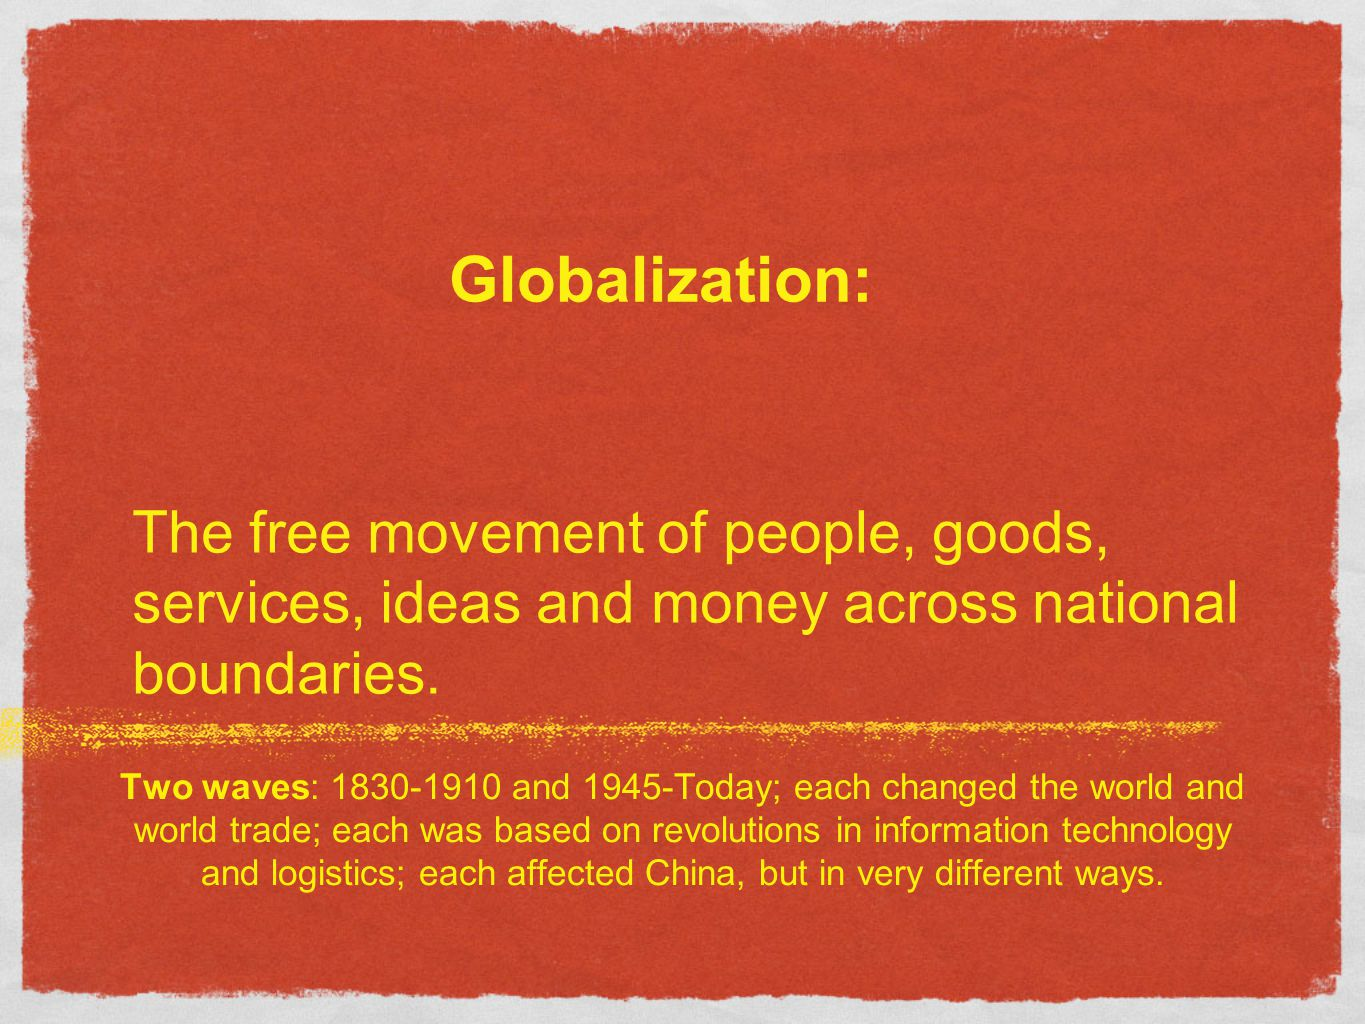 The free movement of people, goods, services, ideas and money across national boundaries.